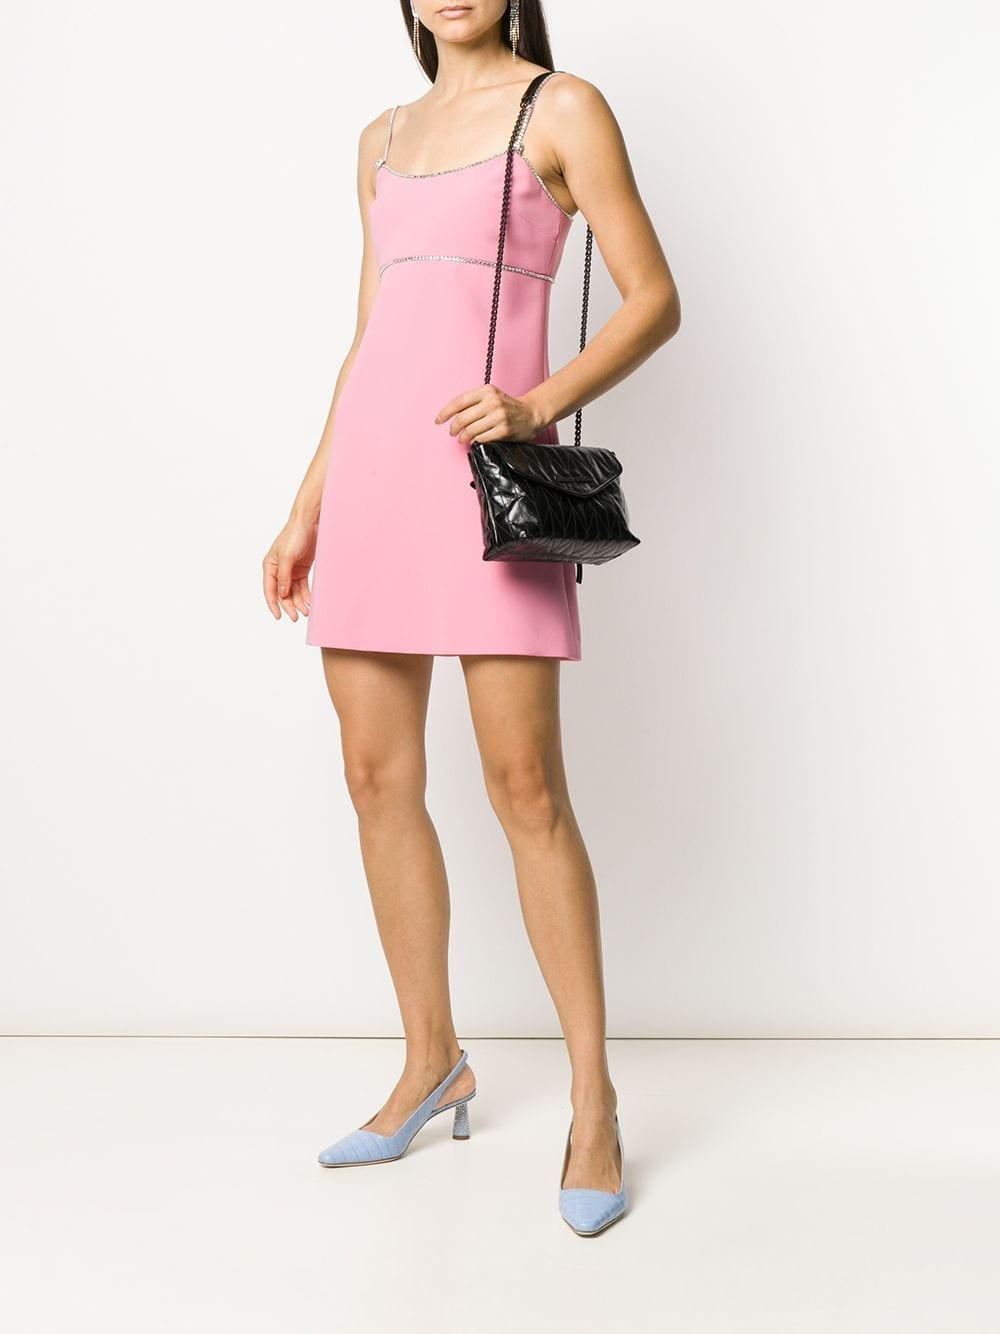 MIU MIU Crystal-embellished Mini Dress